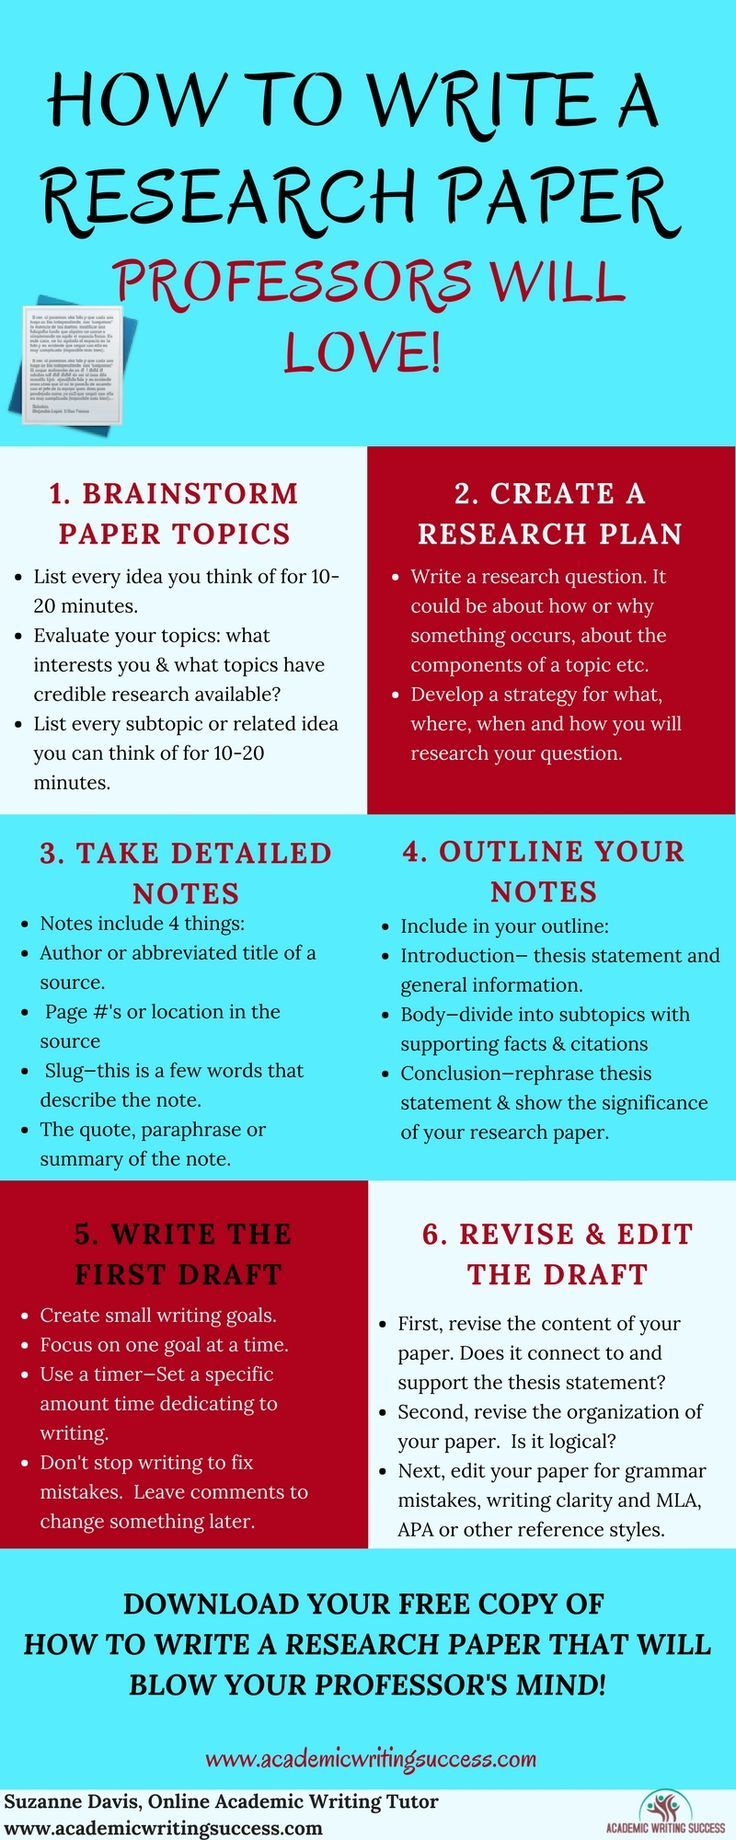 002 Research Paper Tips Awesome College For Students Writing A Full